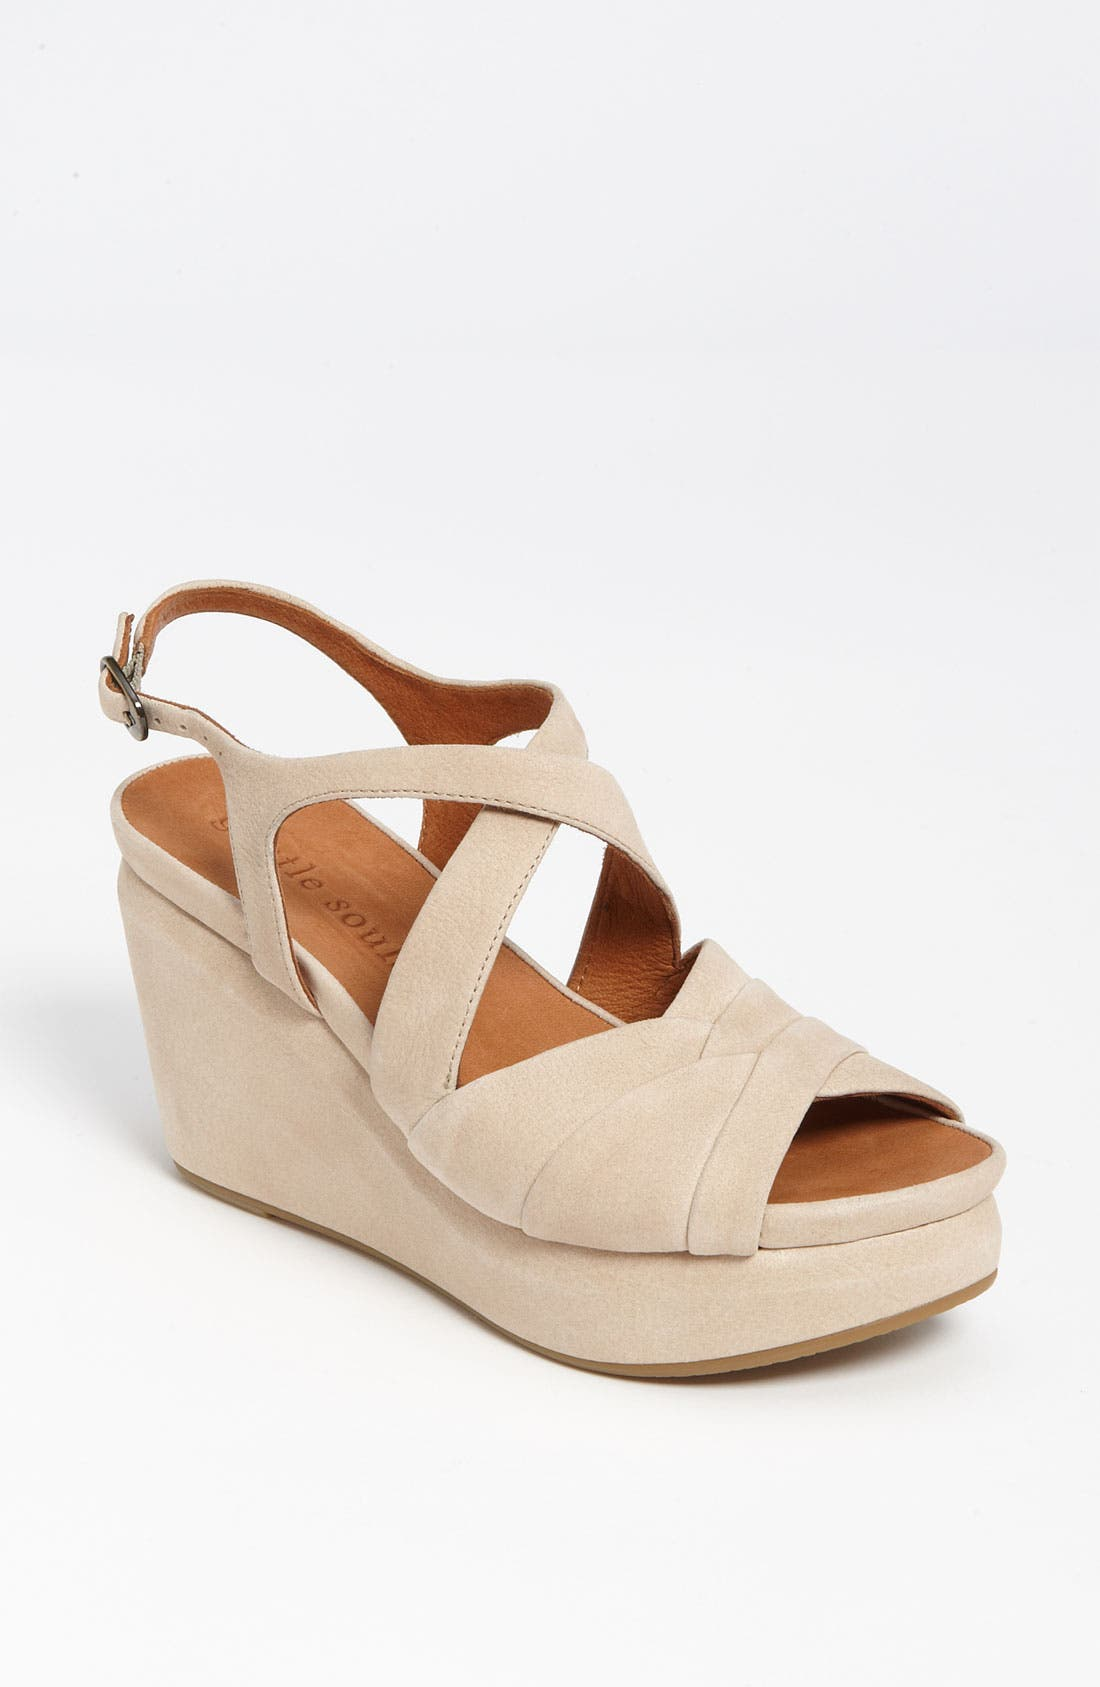 Main Image - Gentle Souls 'June Flower' Sandal